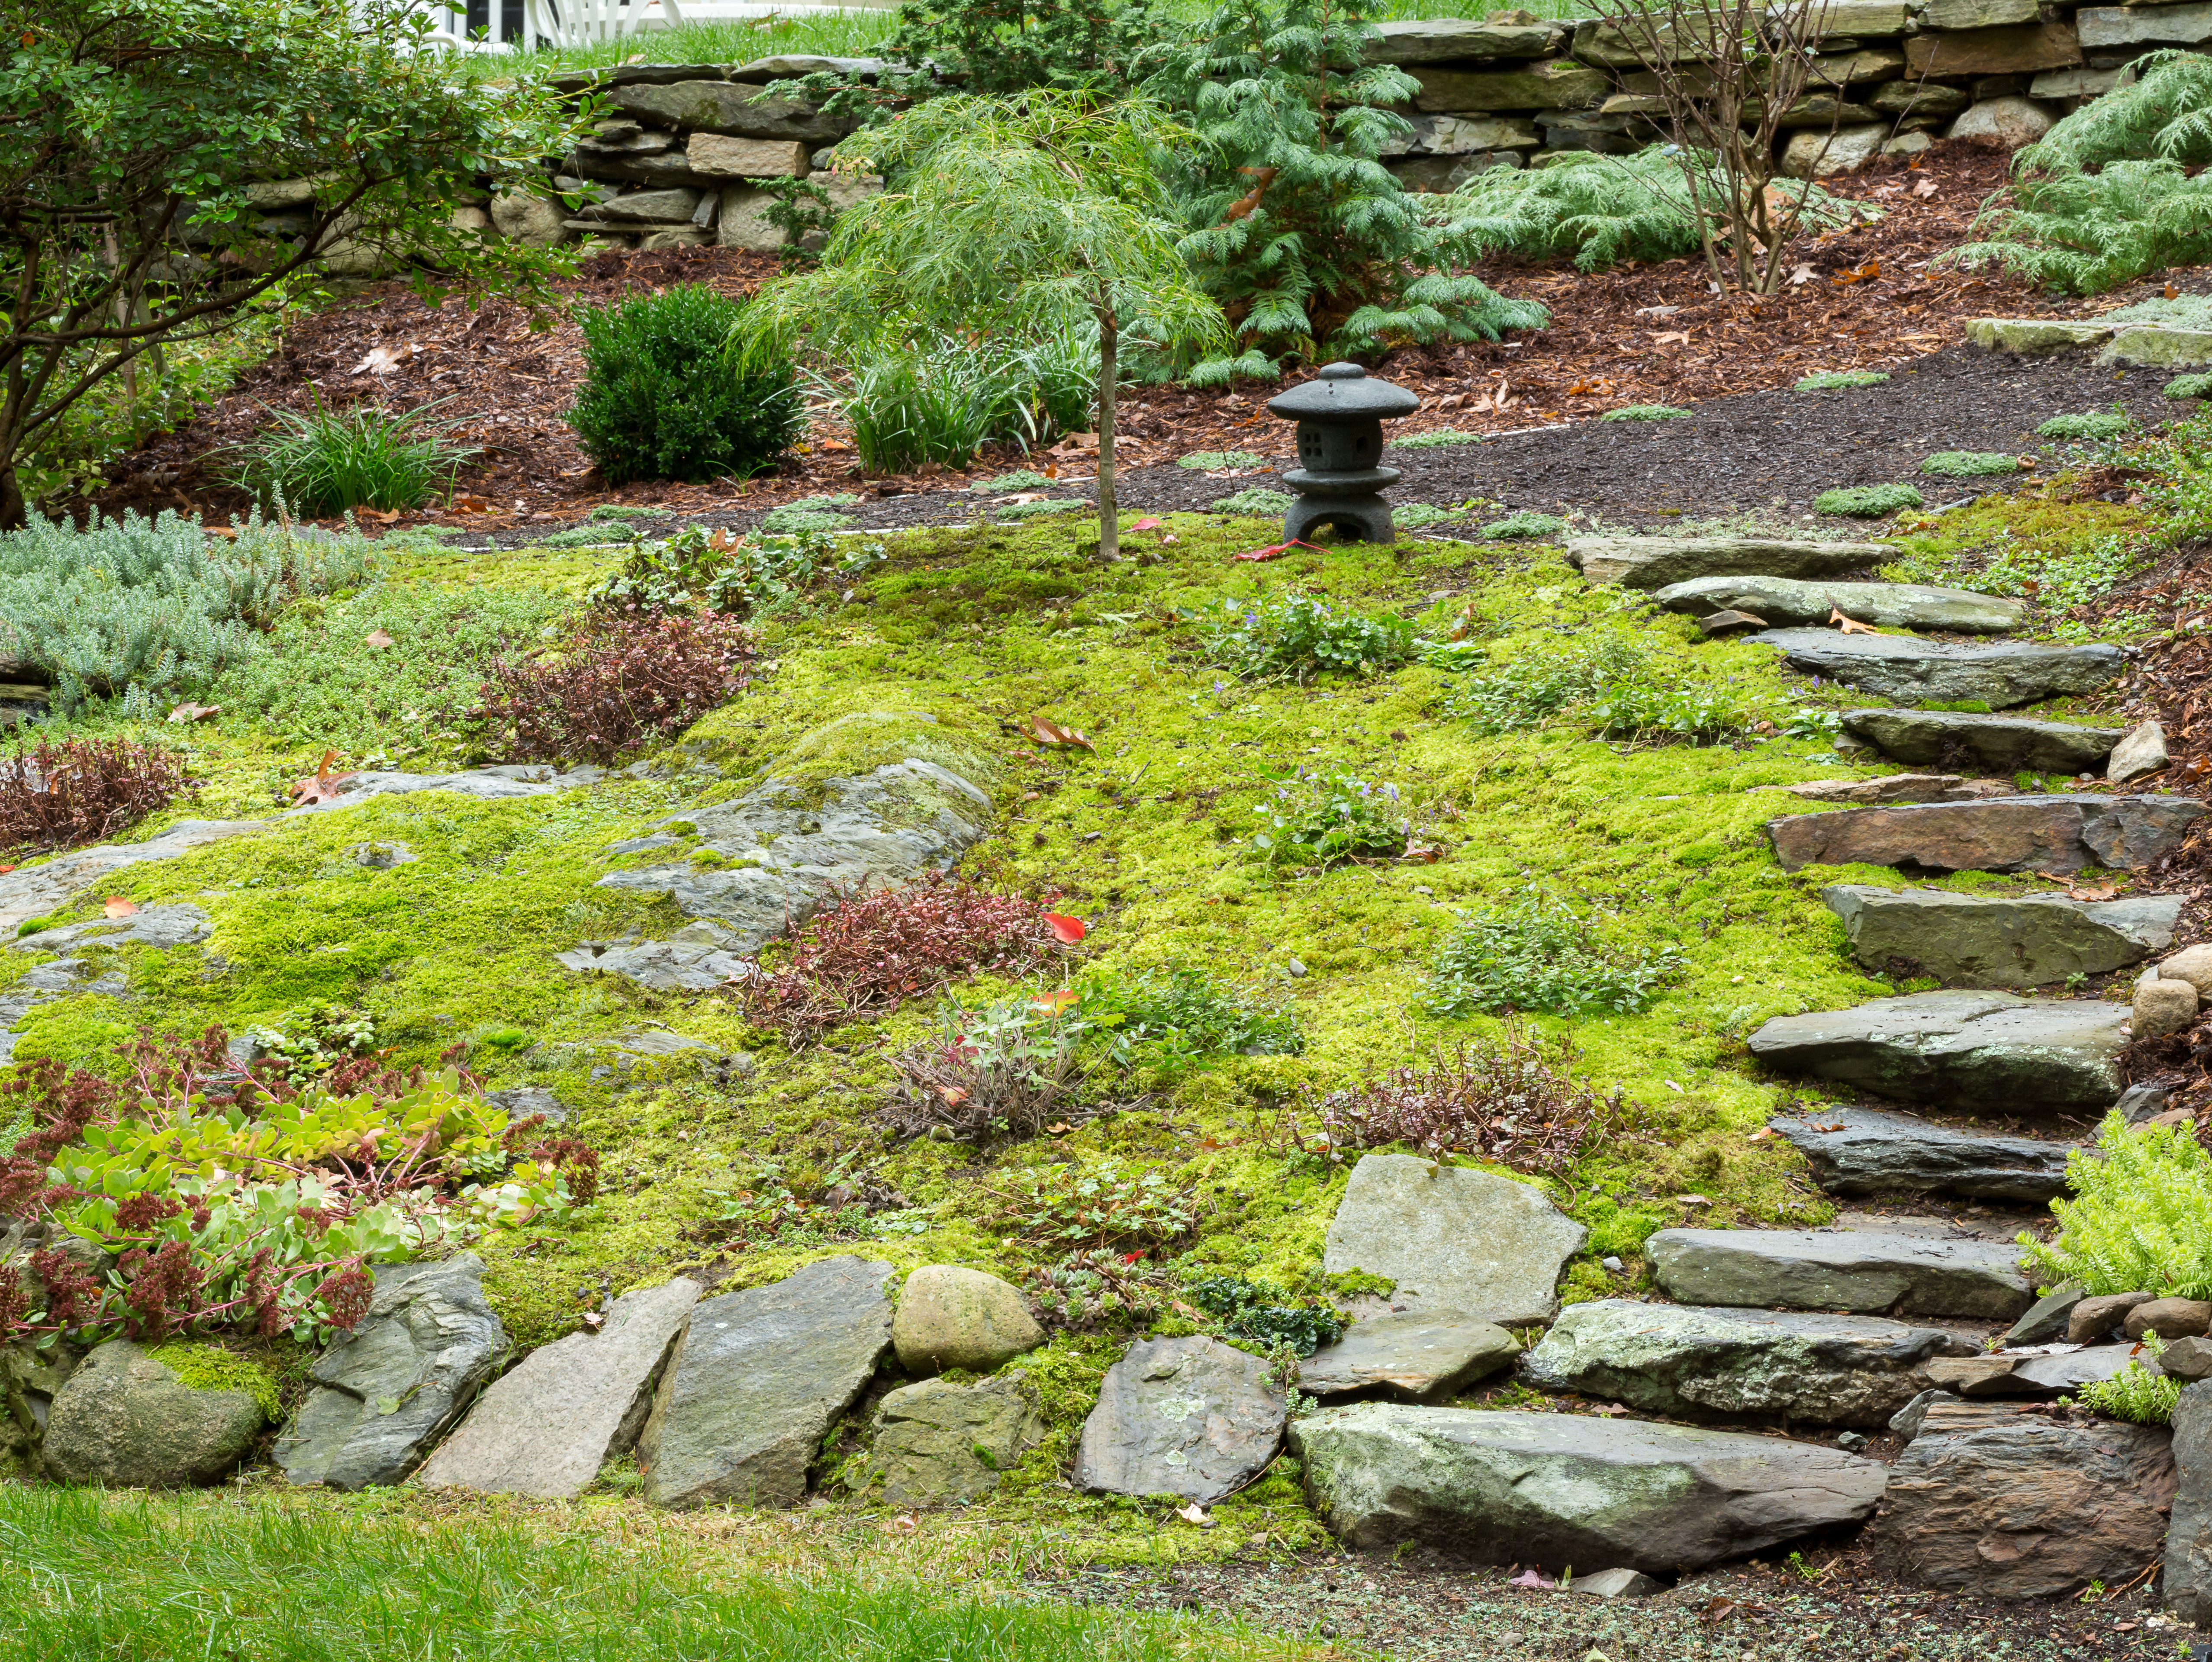 Landscaping on steep slopes